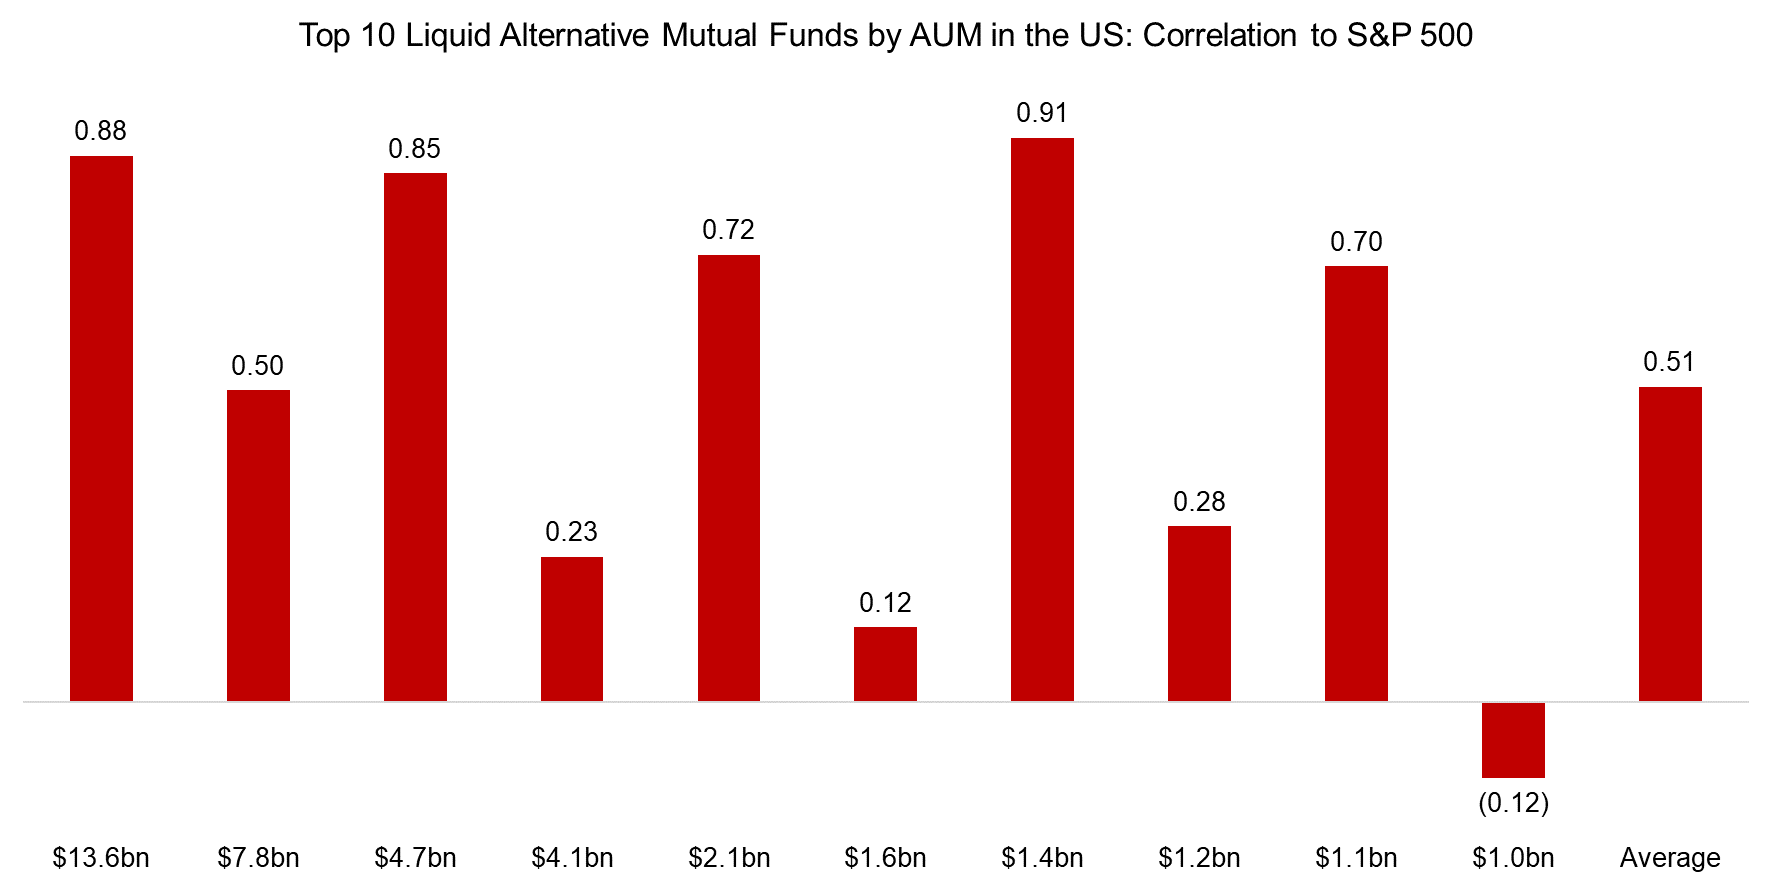 Top 10 Liquid Alternative Mutual Funds by AUM in the US Correlation to S&P 500